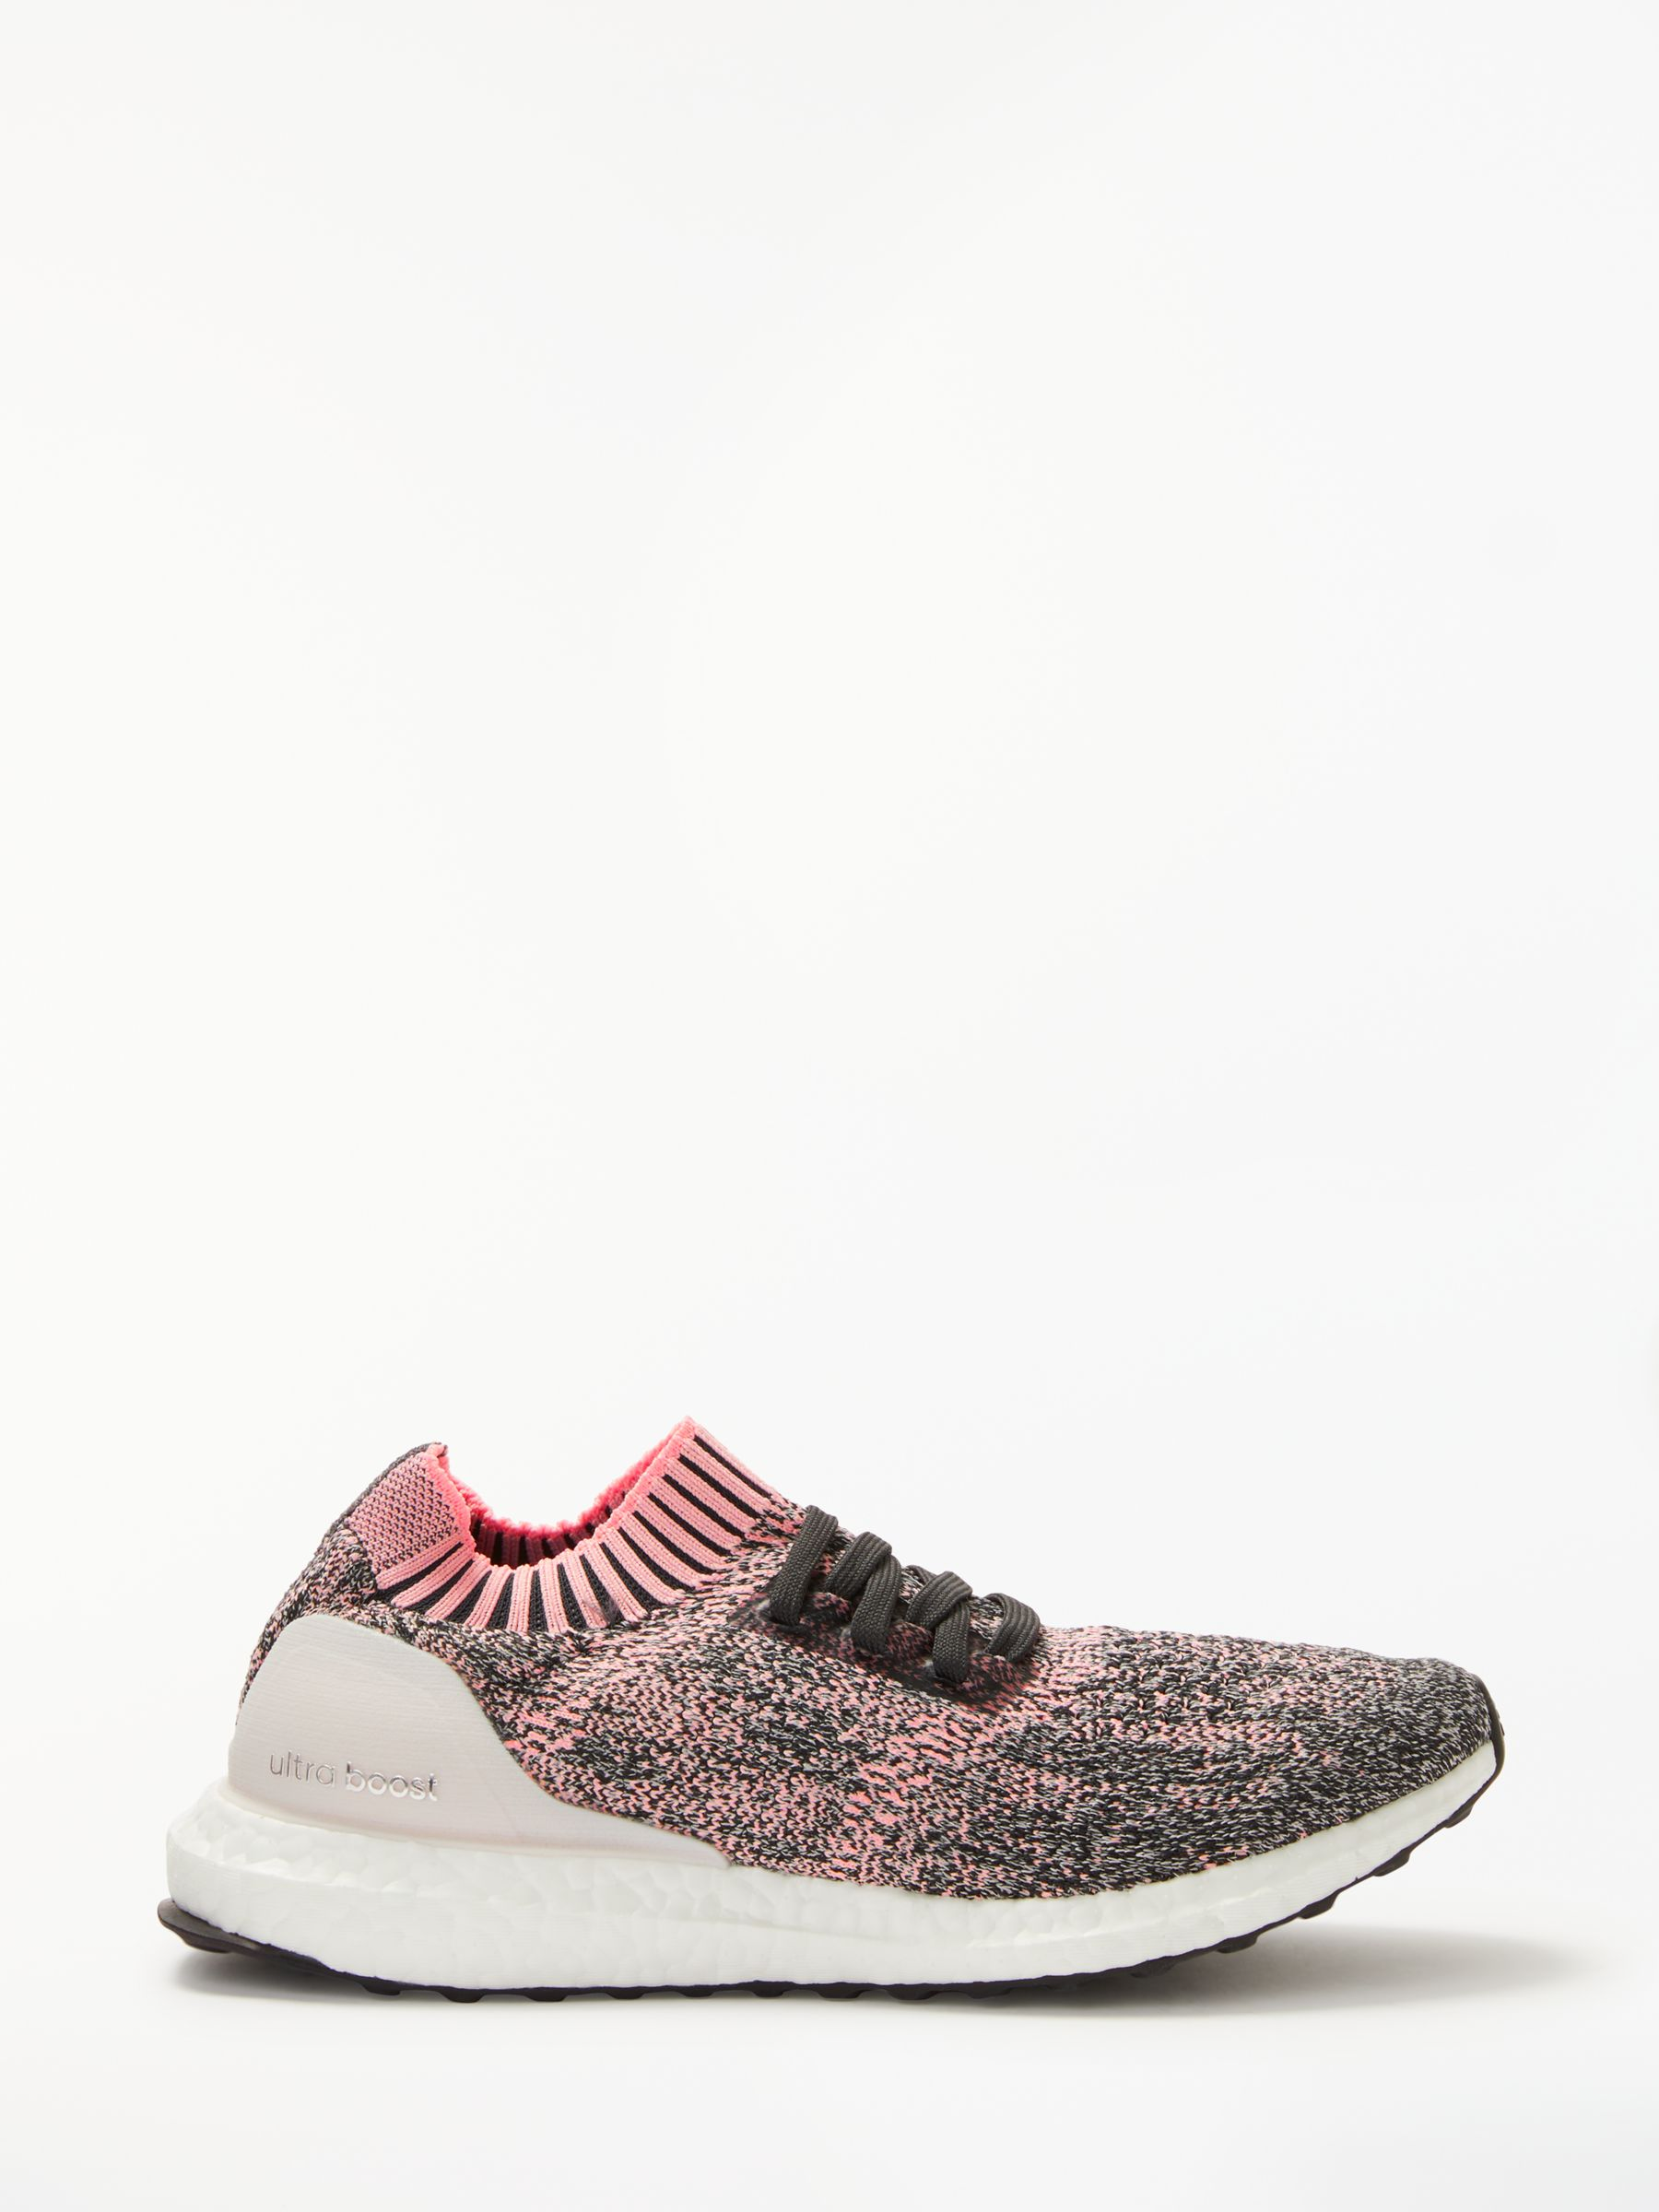 buy online 93b8c c862d adidas UltraBOOST Uncaged Women's Running Shoes, True Pink ...